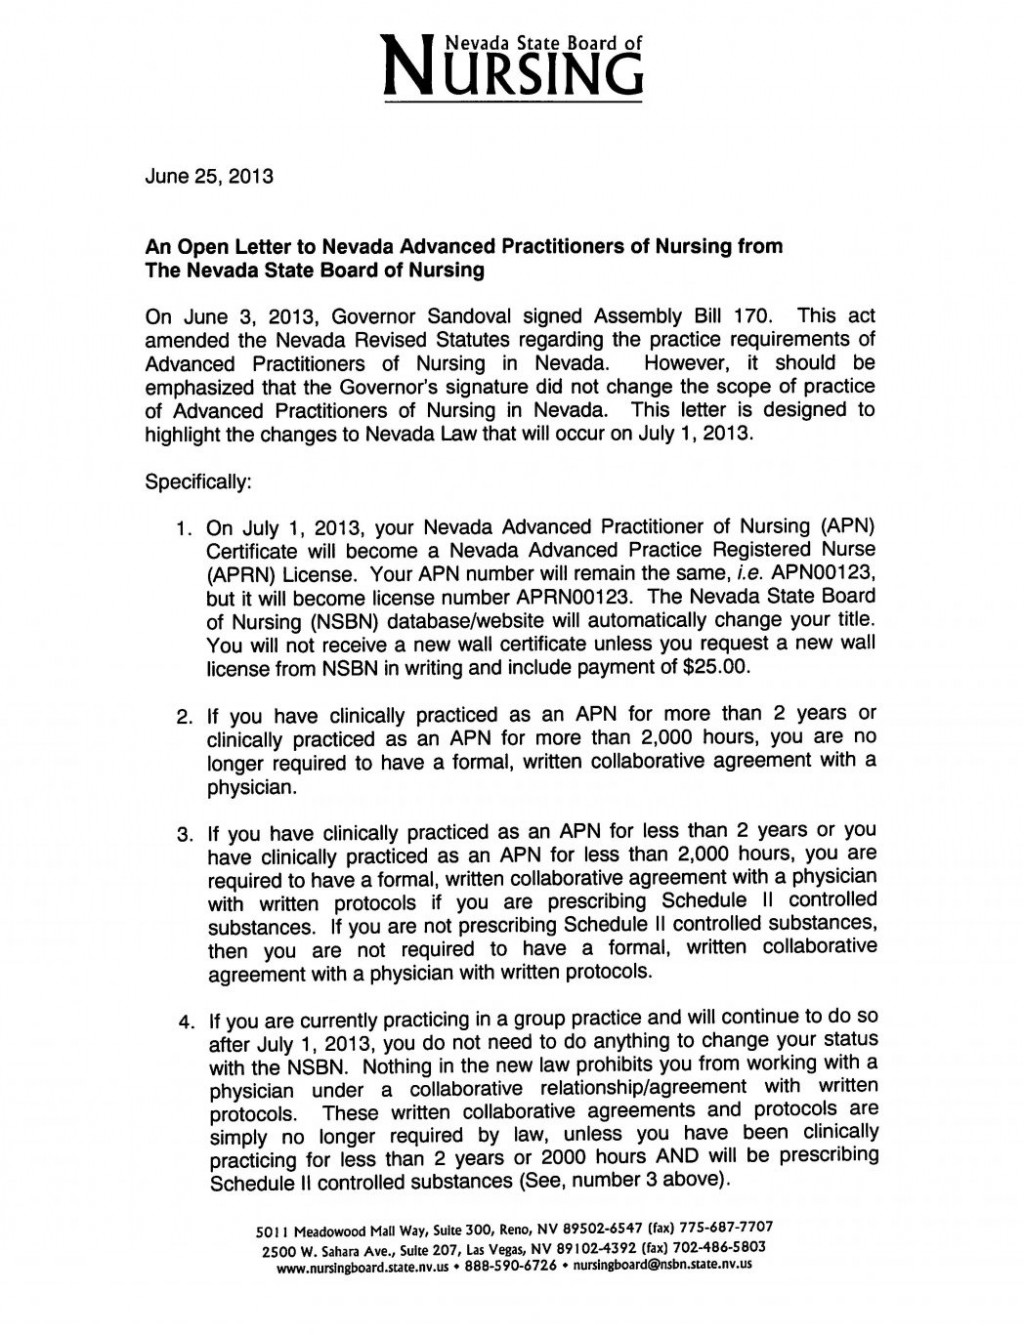 012 Nurse Practitioner Essay I Want To Why Do Writers Write Aprnletter P Should Struggle Essays What My About We Have Cant Good So Slowly 1048x1367 Stunning Be A Admission Sample Pdf Large